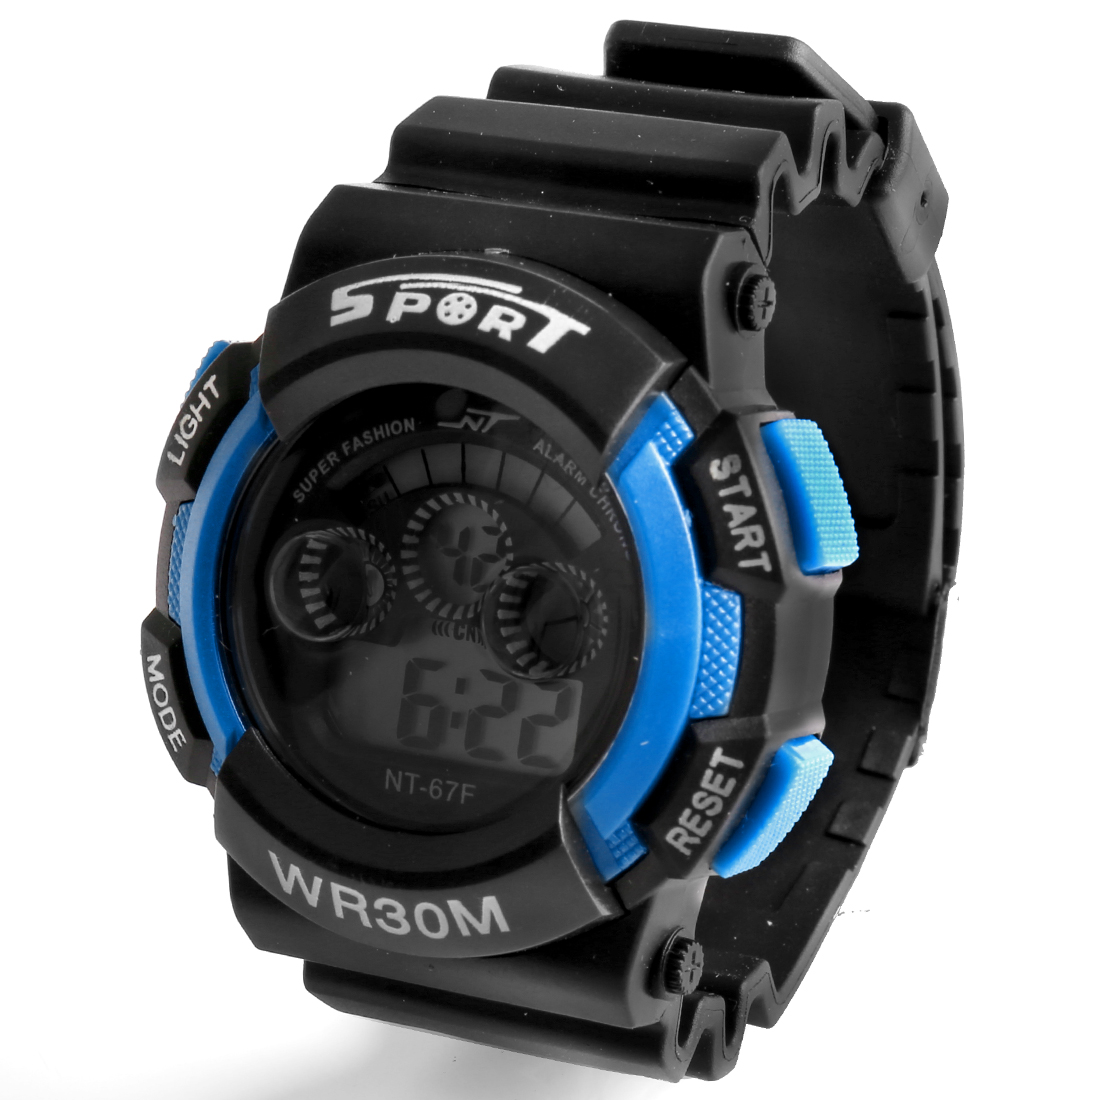 Men Adjustable Watchband Round Case Alarm Stopwatch Sports Wrist Watch Blue Black